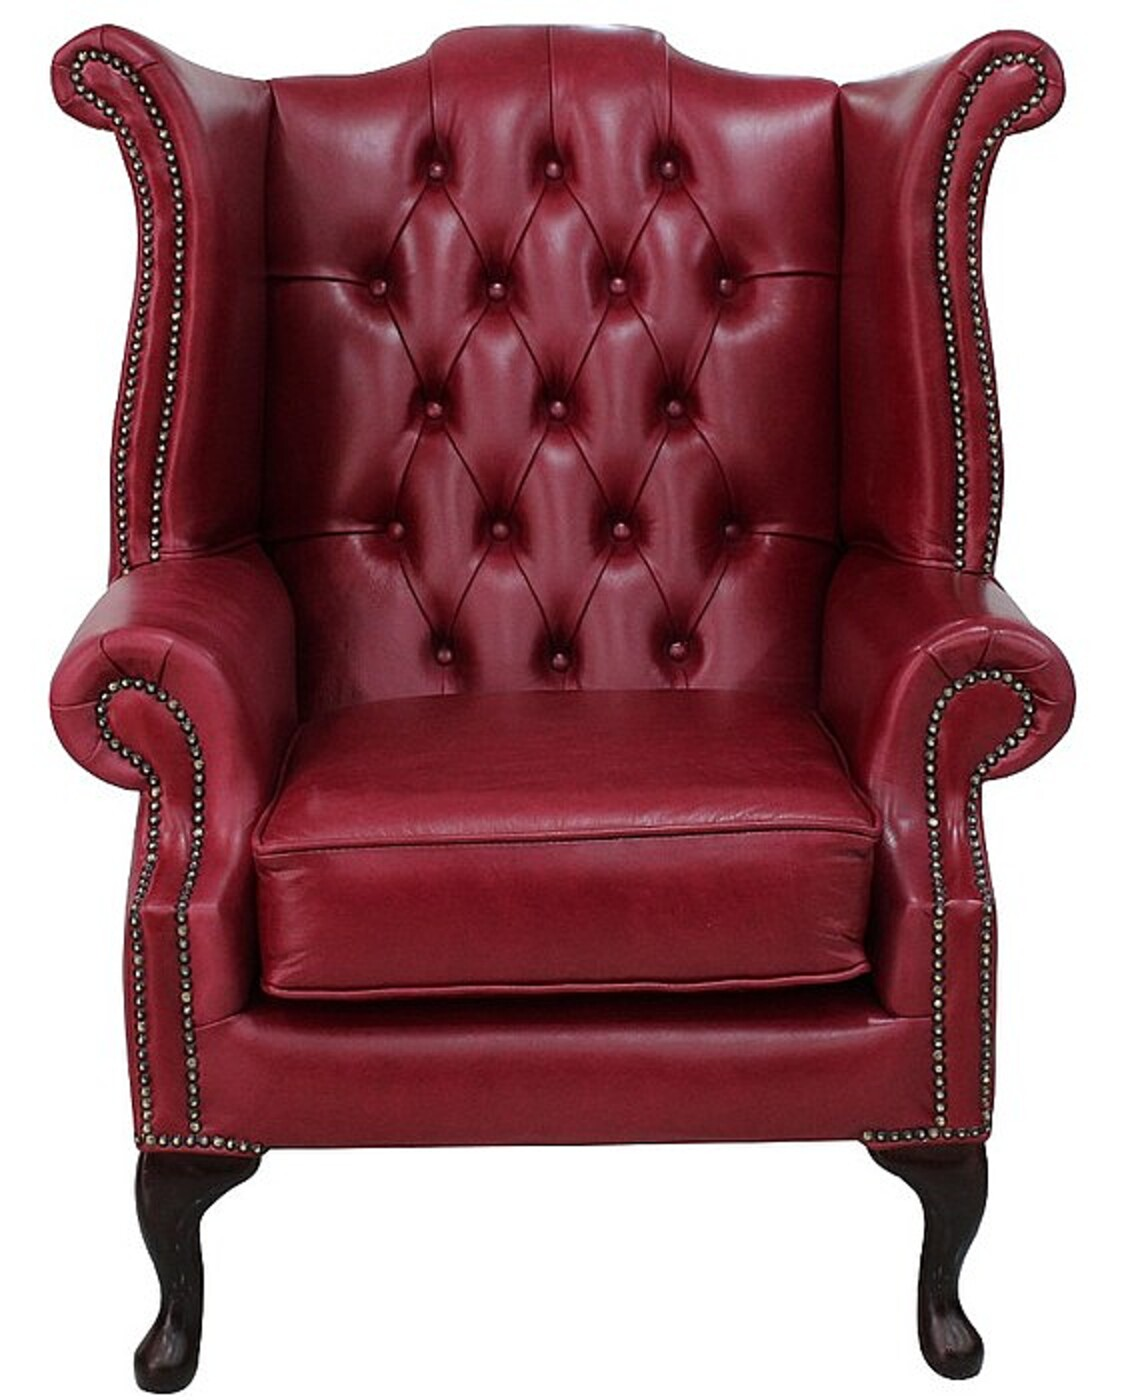 Gamay Chesterfield Queen Anne High Back chair